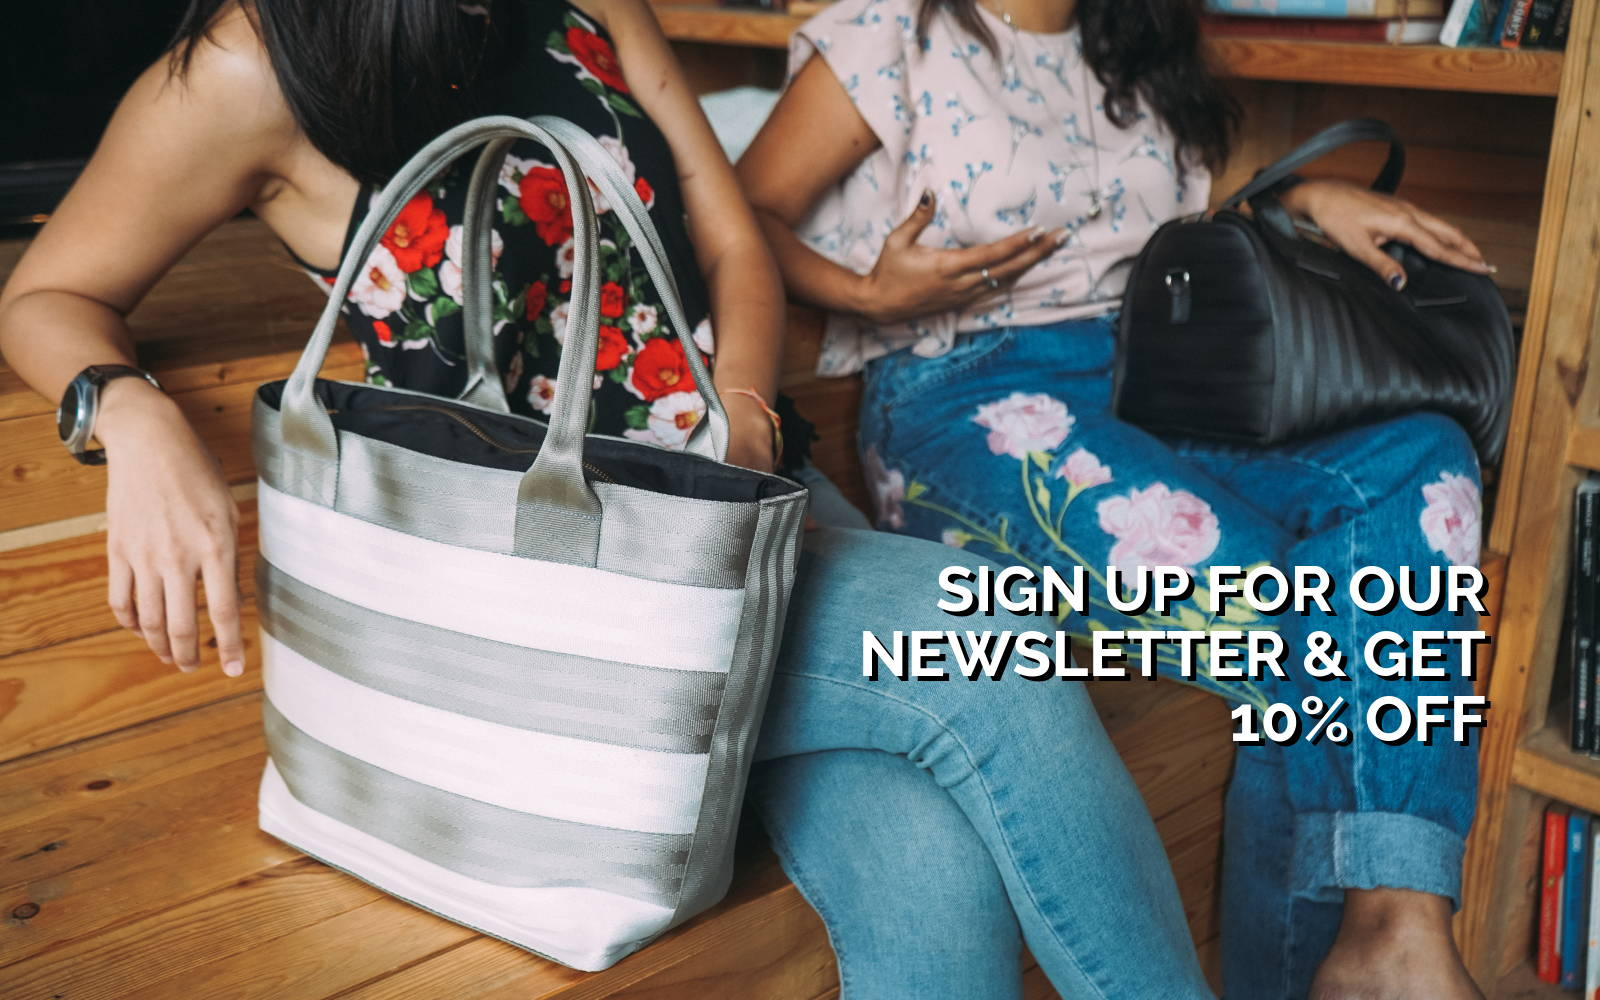 Get 10% off when you subscribe to Biji-biji Ethical Fashion newsletter